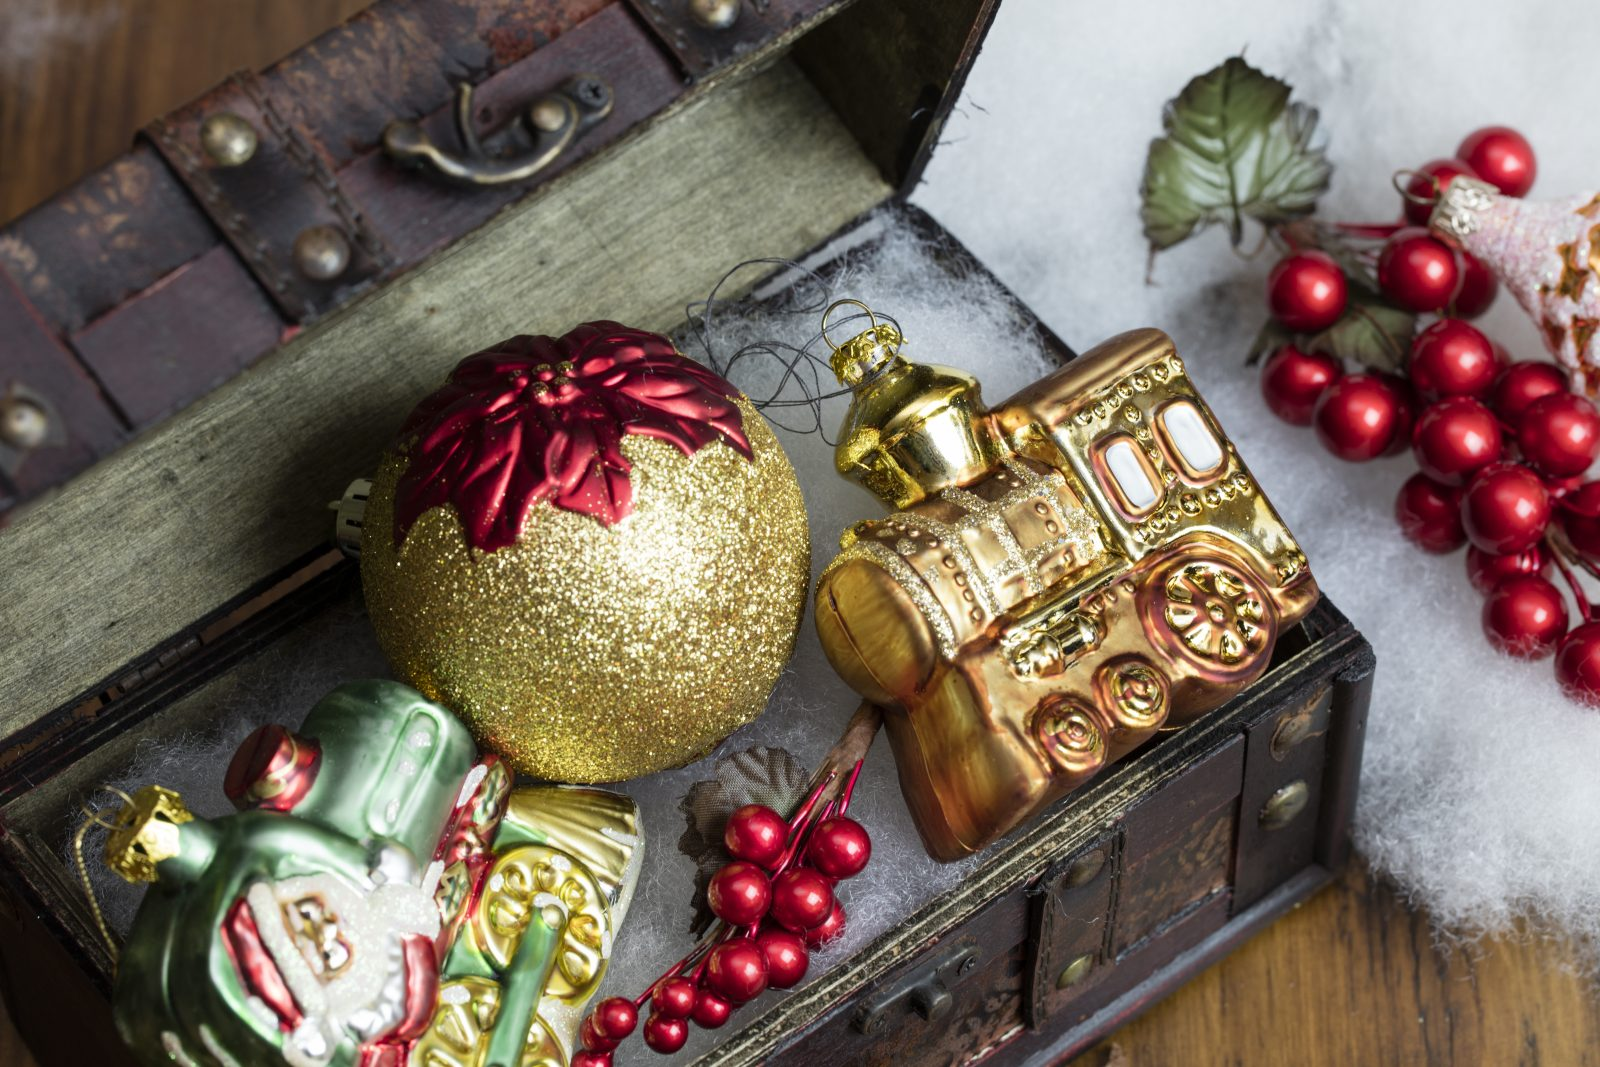 Vintage Christmas Ornaments in a Box